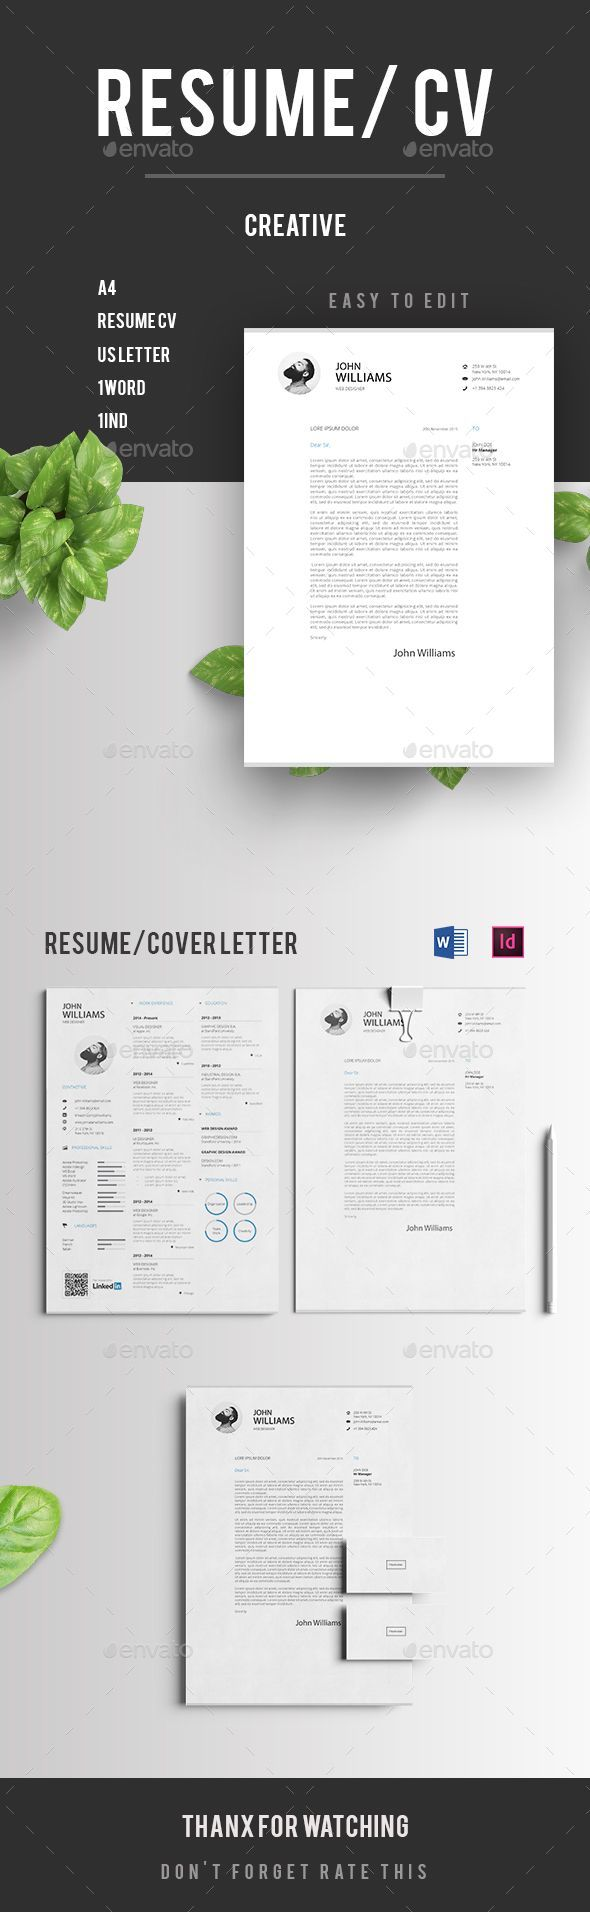 cashier resume format%0A  Resume CV   Resumes Stationery Download here  https   graphicriver